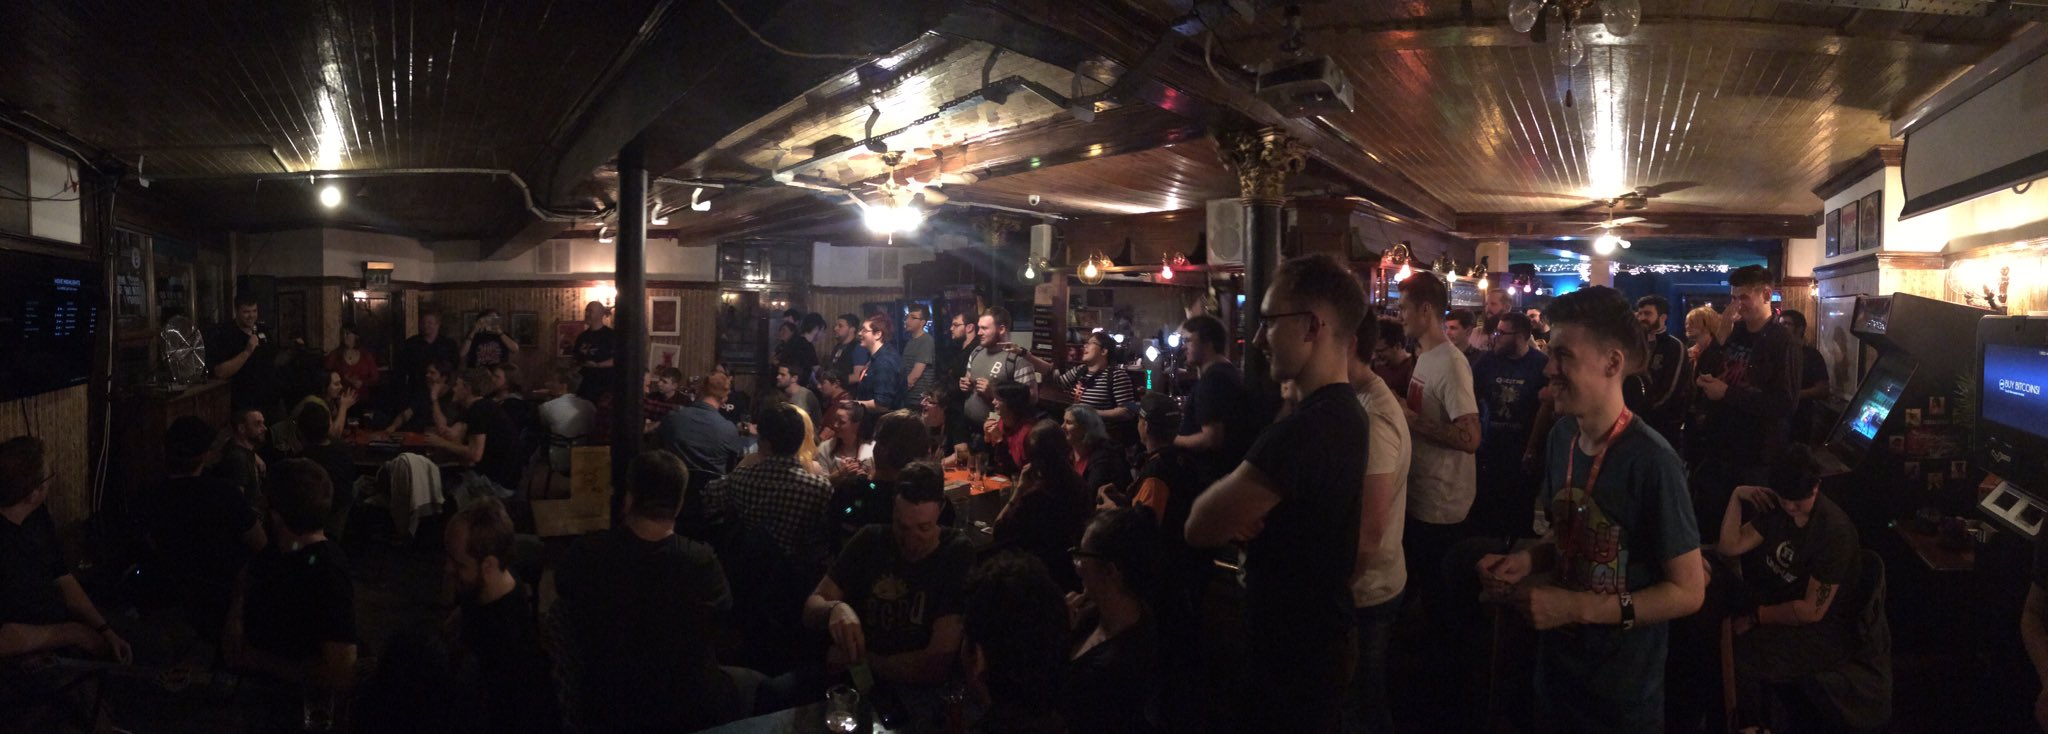 668172-1508511670187-after_party_pano.jp